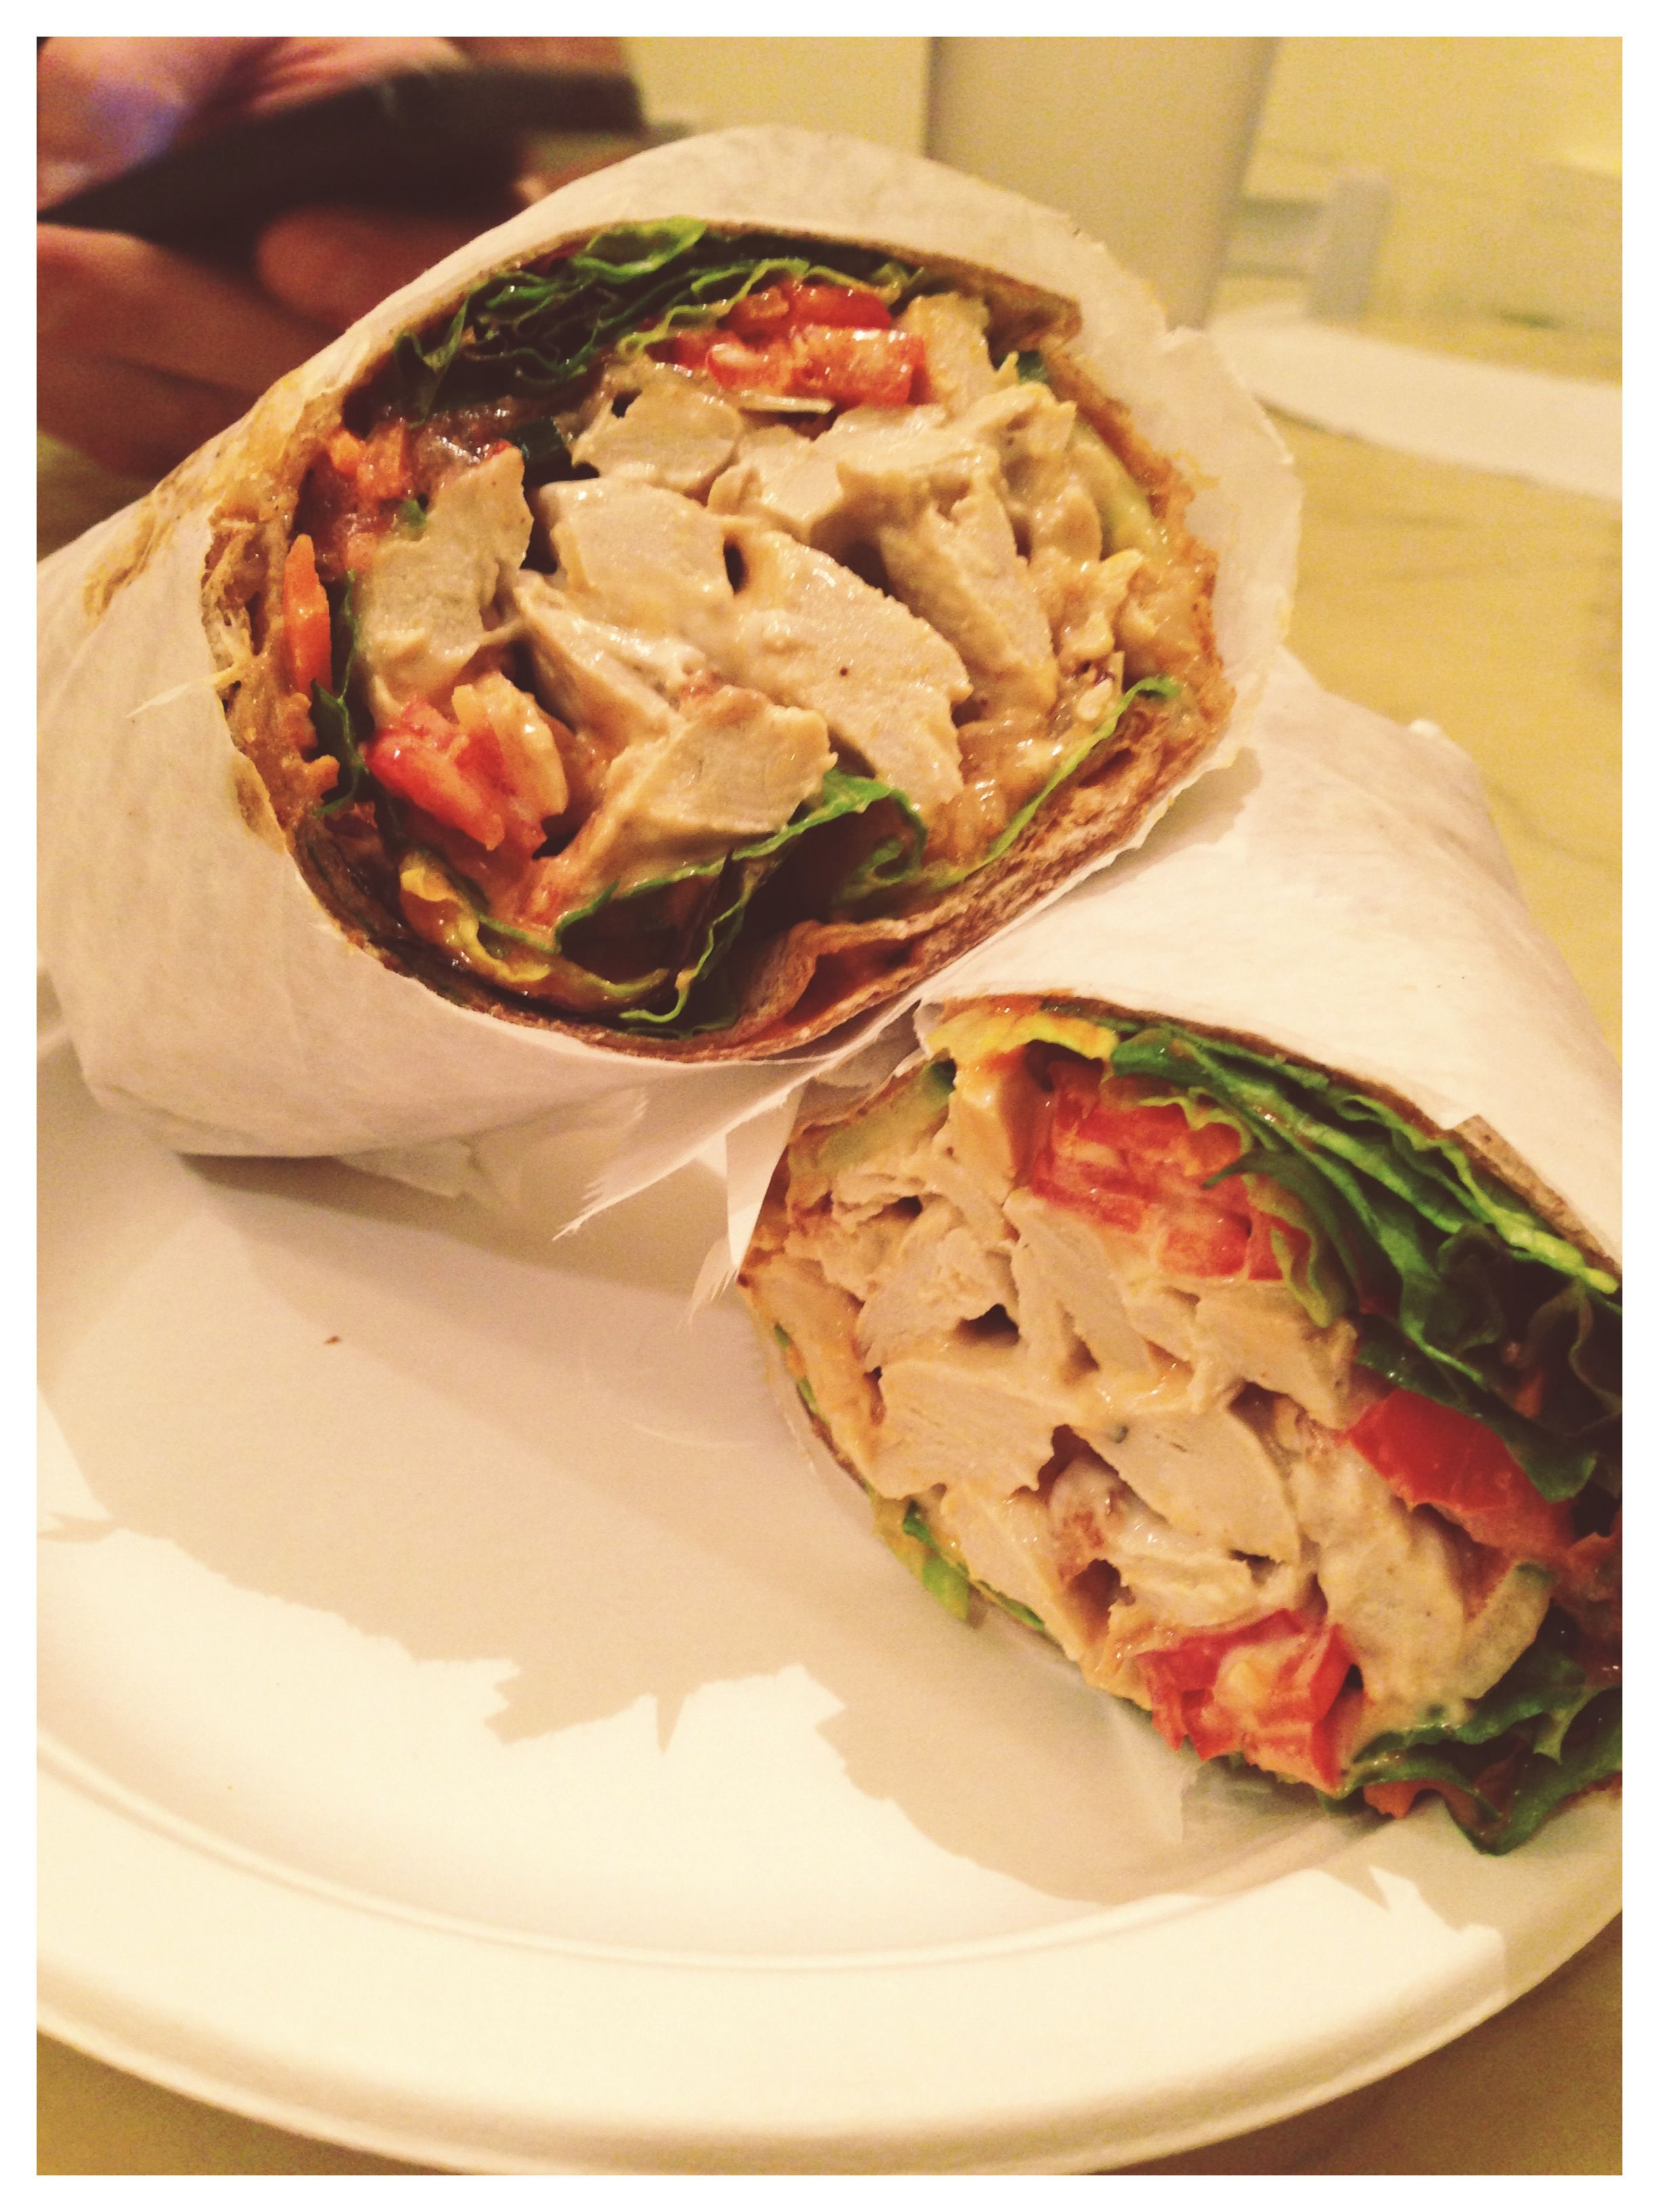 Vegan Buffalo Wrap From Loving Hut Cincinnati Ohio Restaurants